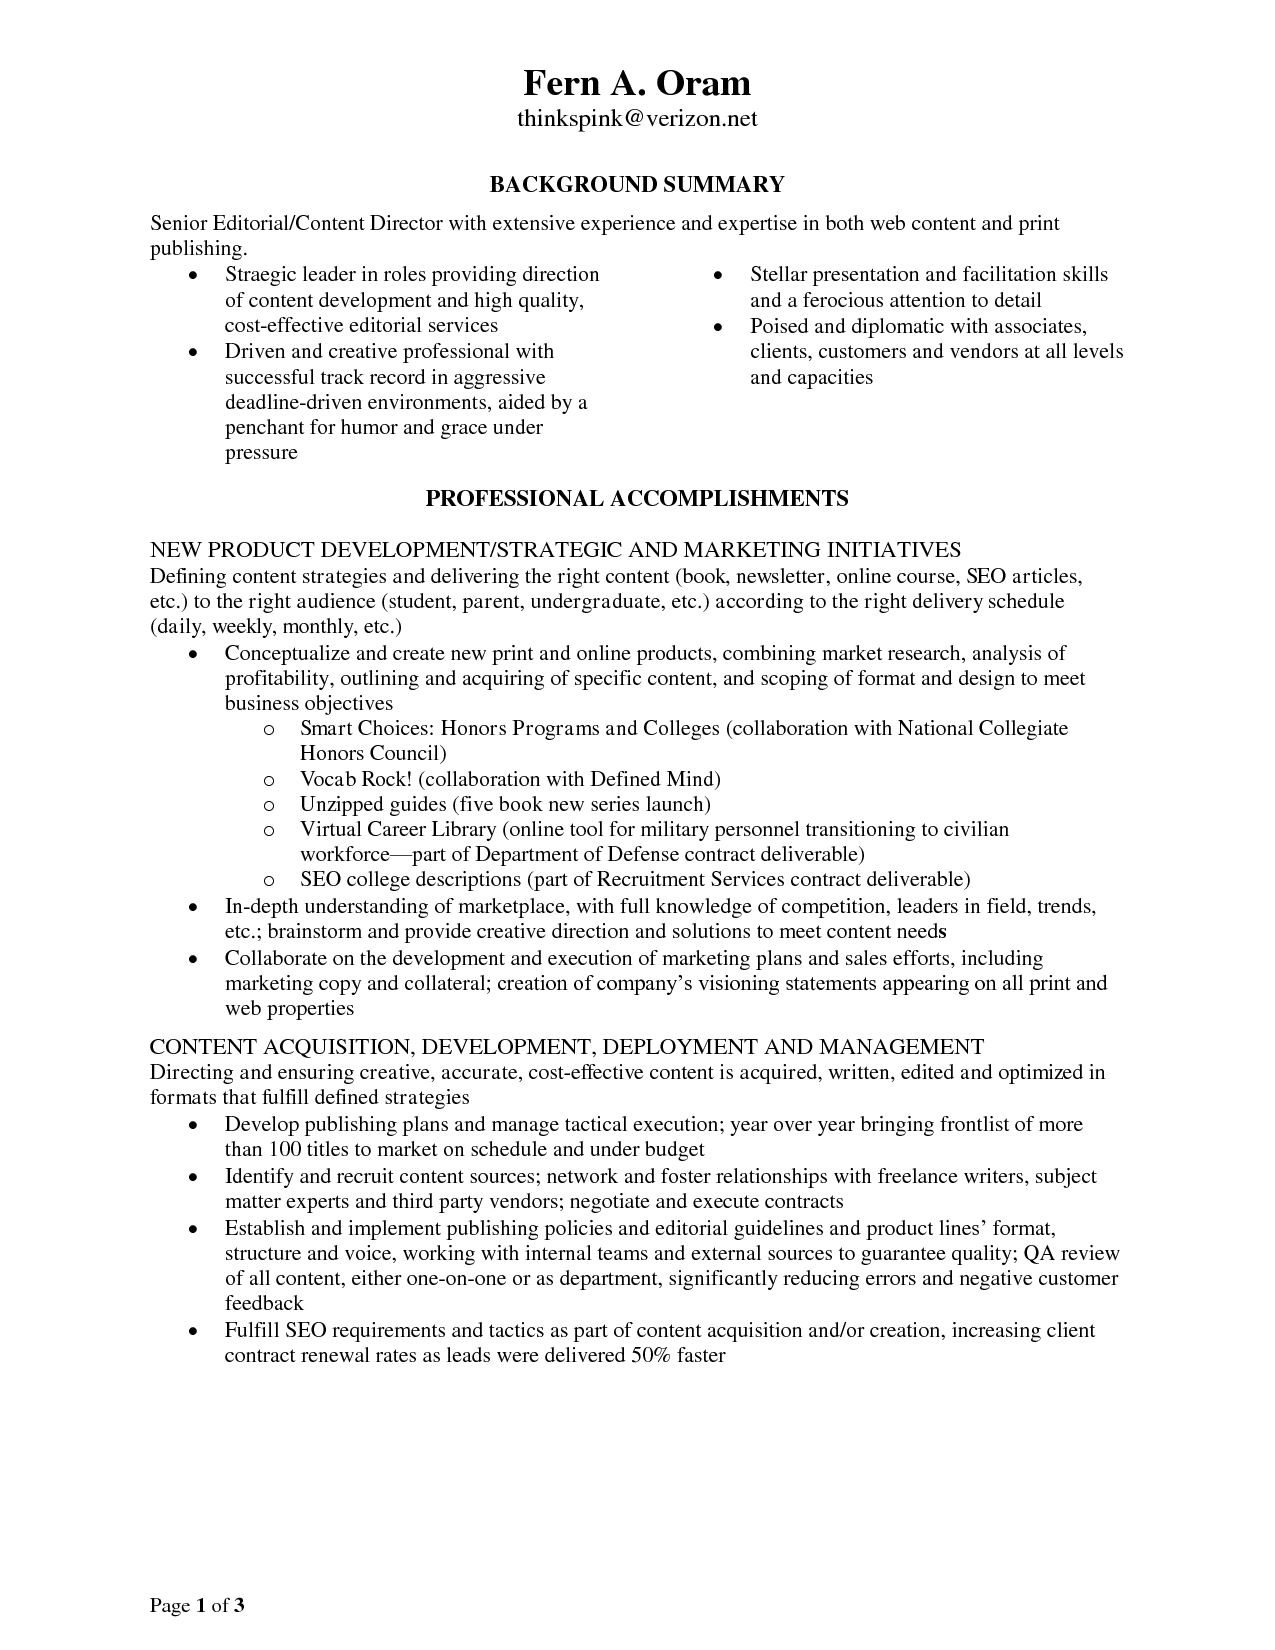 Sample Simple Resume Monster Resume Templates Free Monster Resume Templates Free